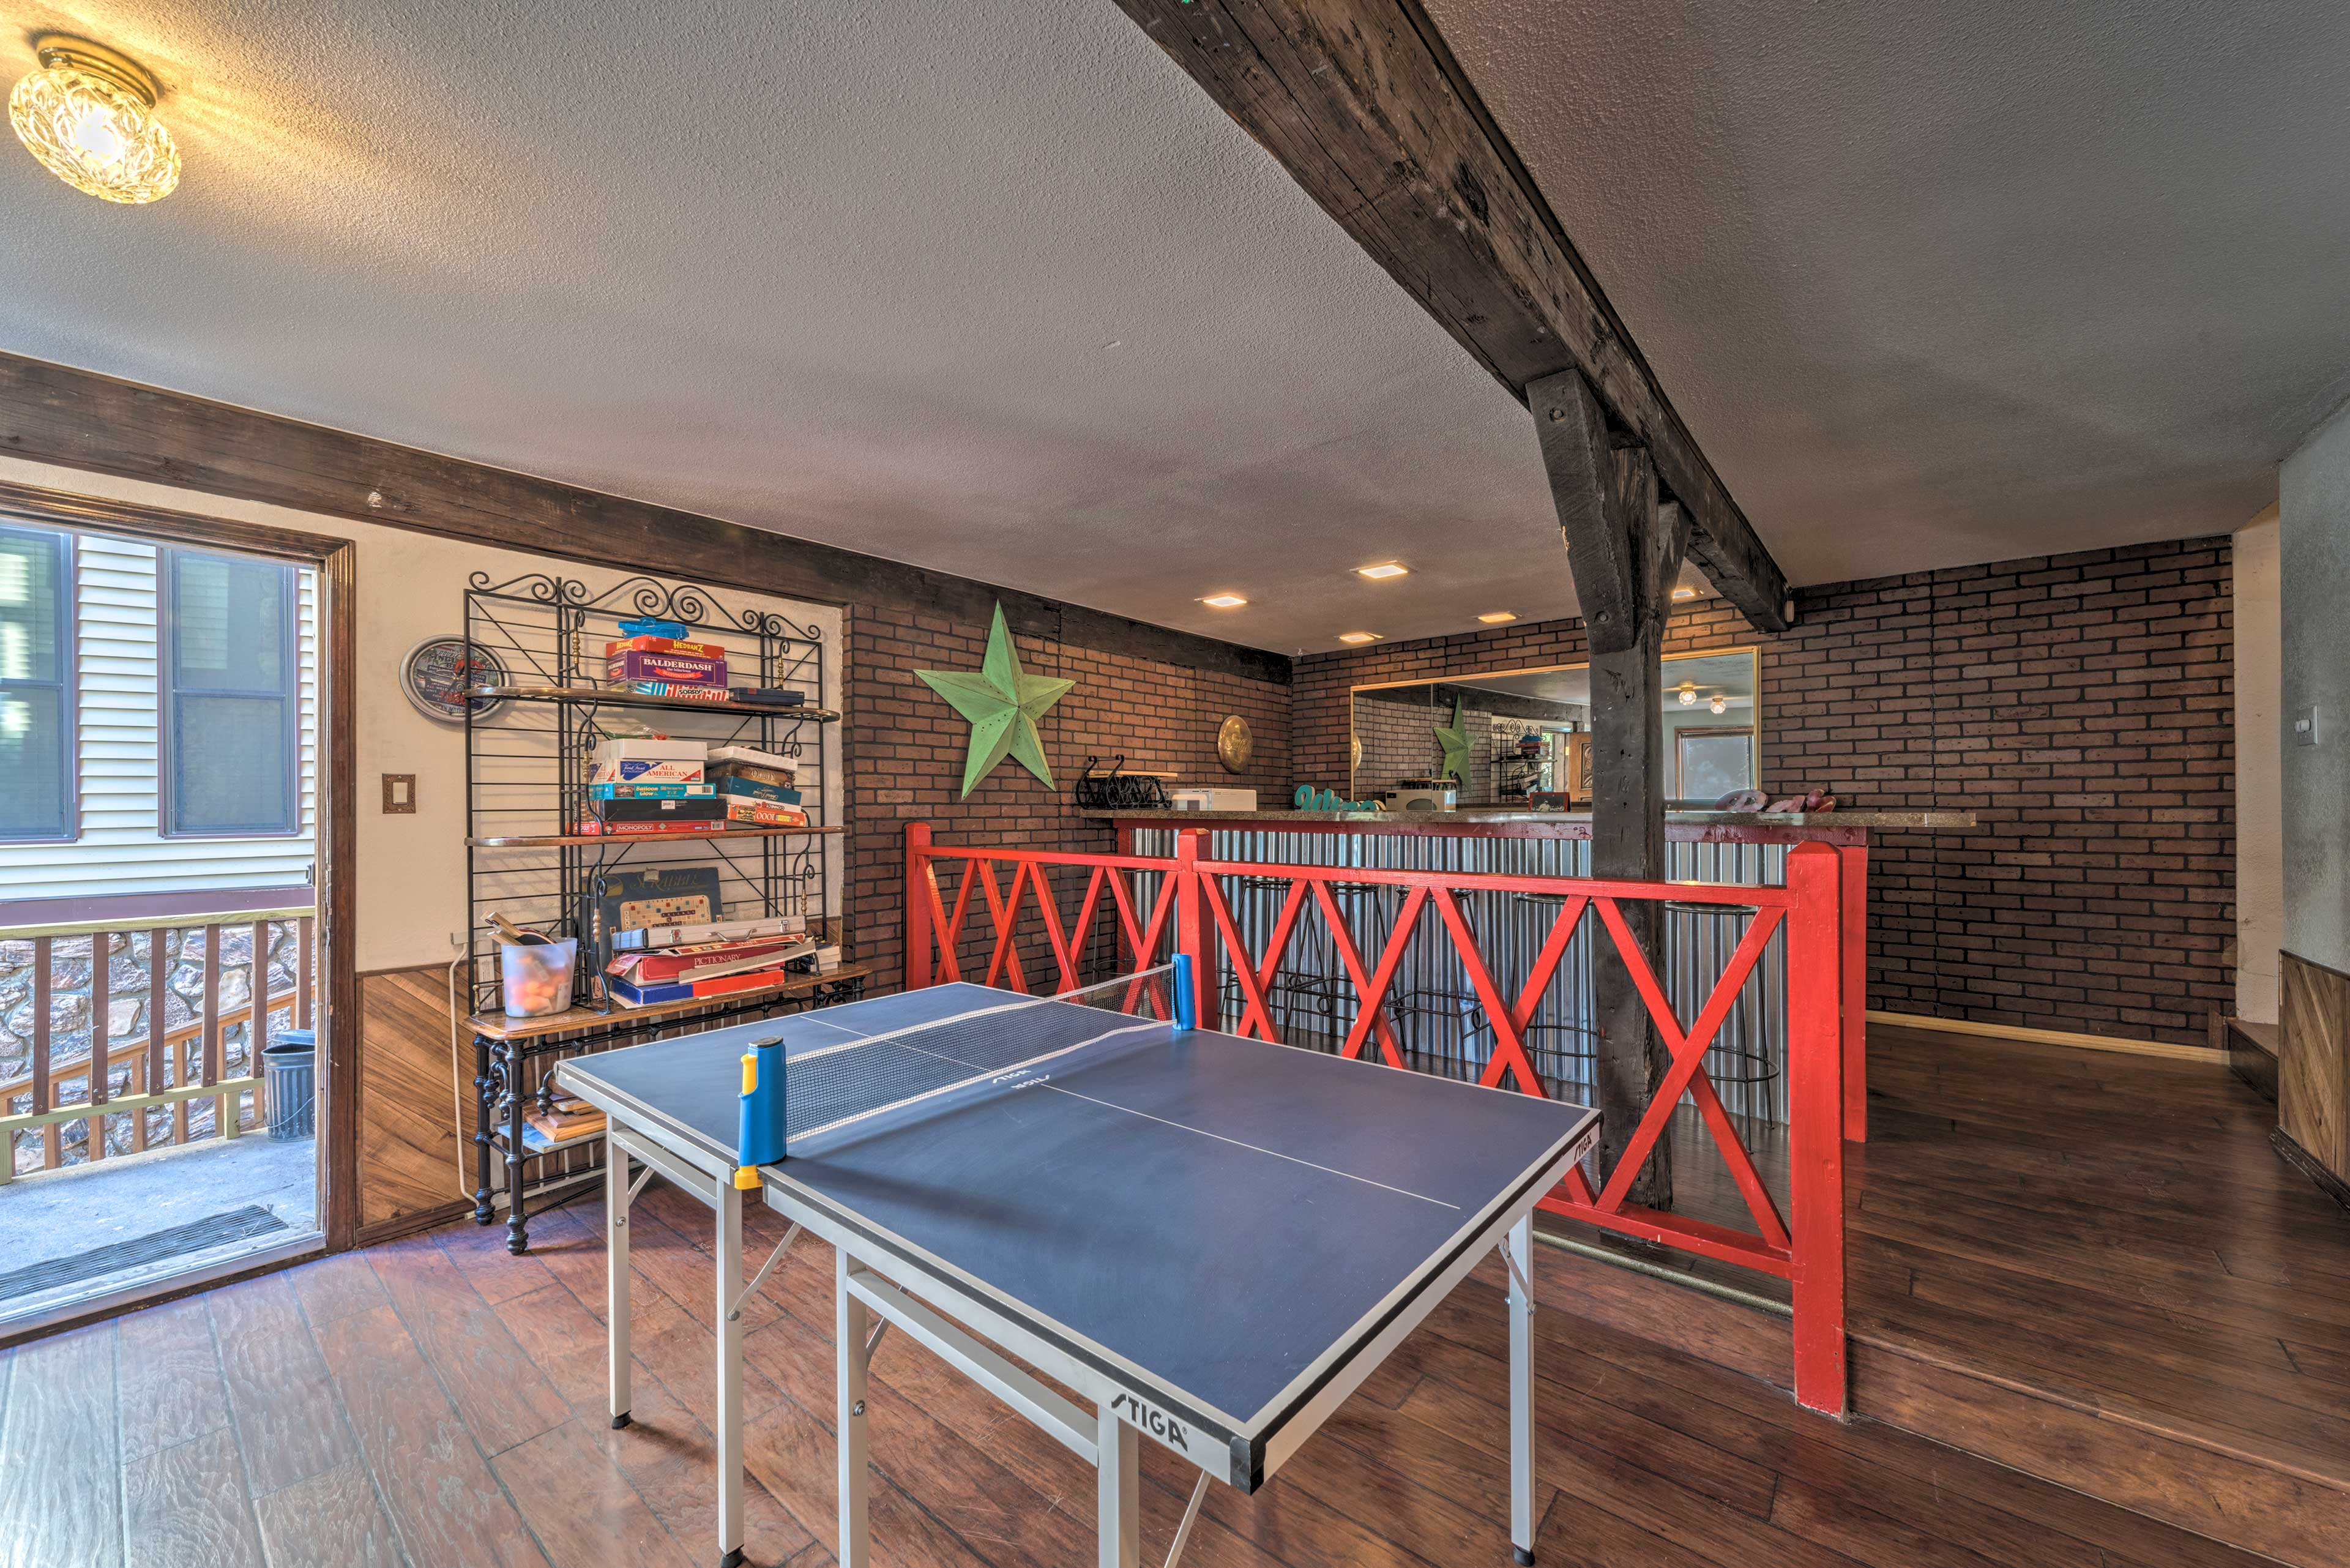 Game Room | Ping Pong Table